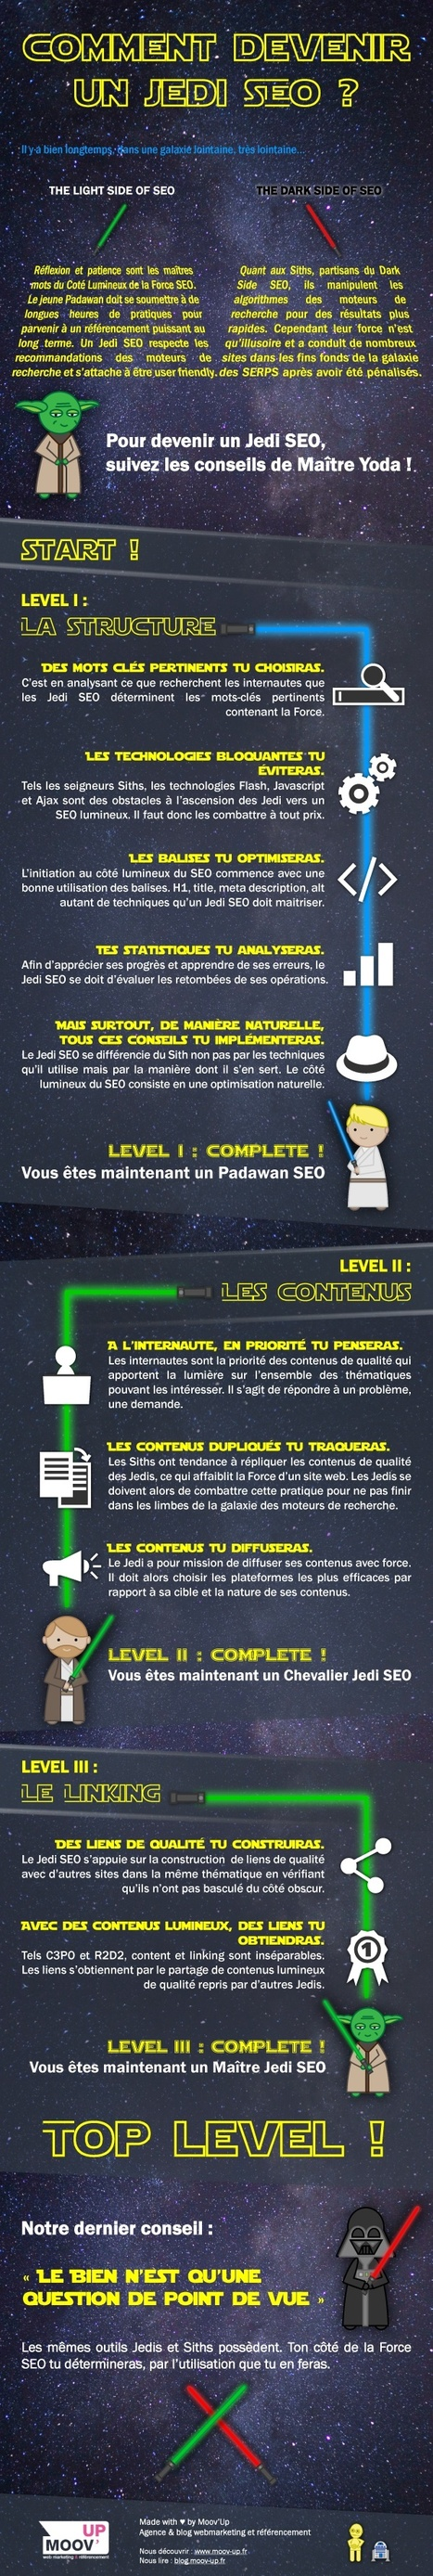 Comment devenir un Jedi du SEO | Les infographies ! | Scoop.it